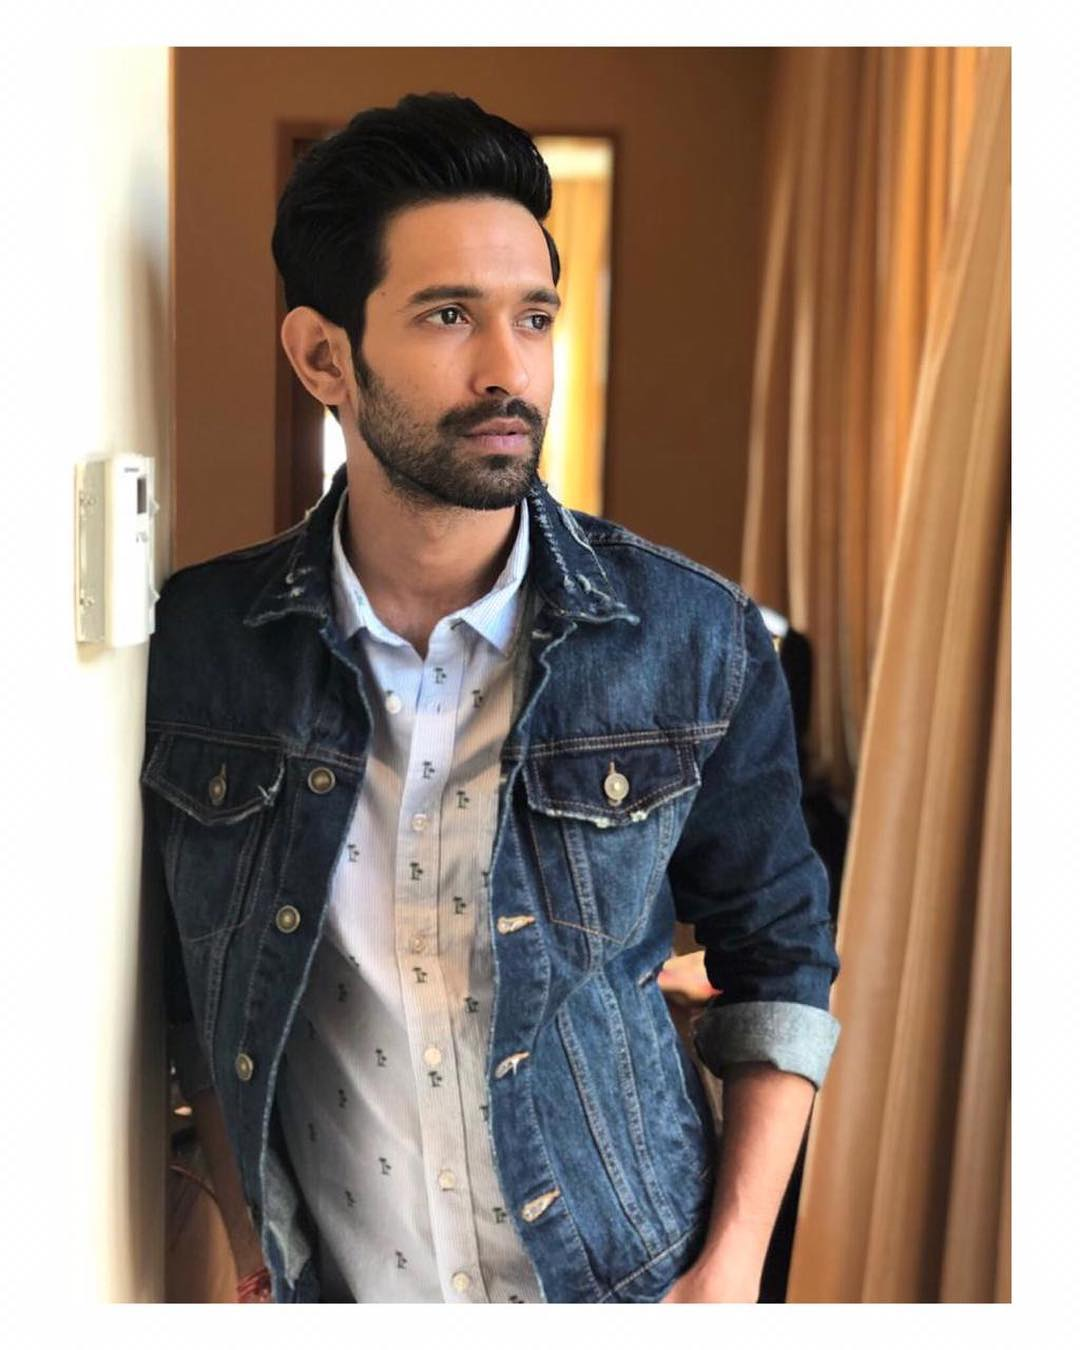 Manukriti is all set to romance Vikrant Massey in her upcoming film